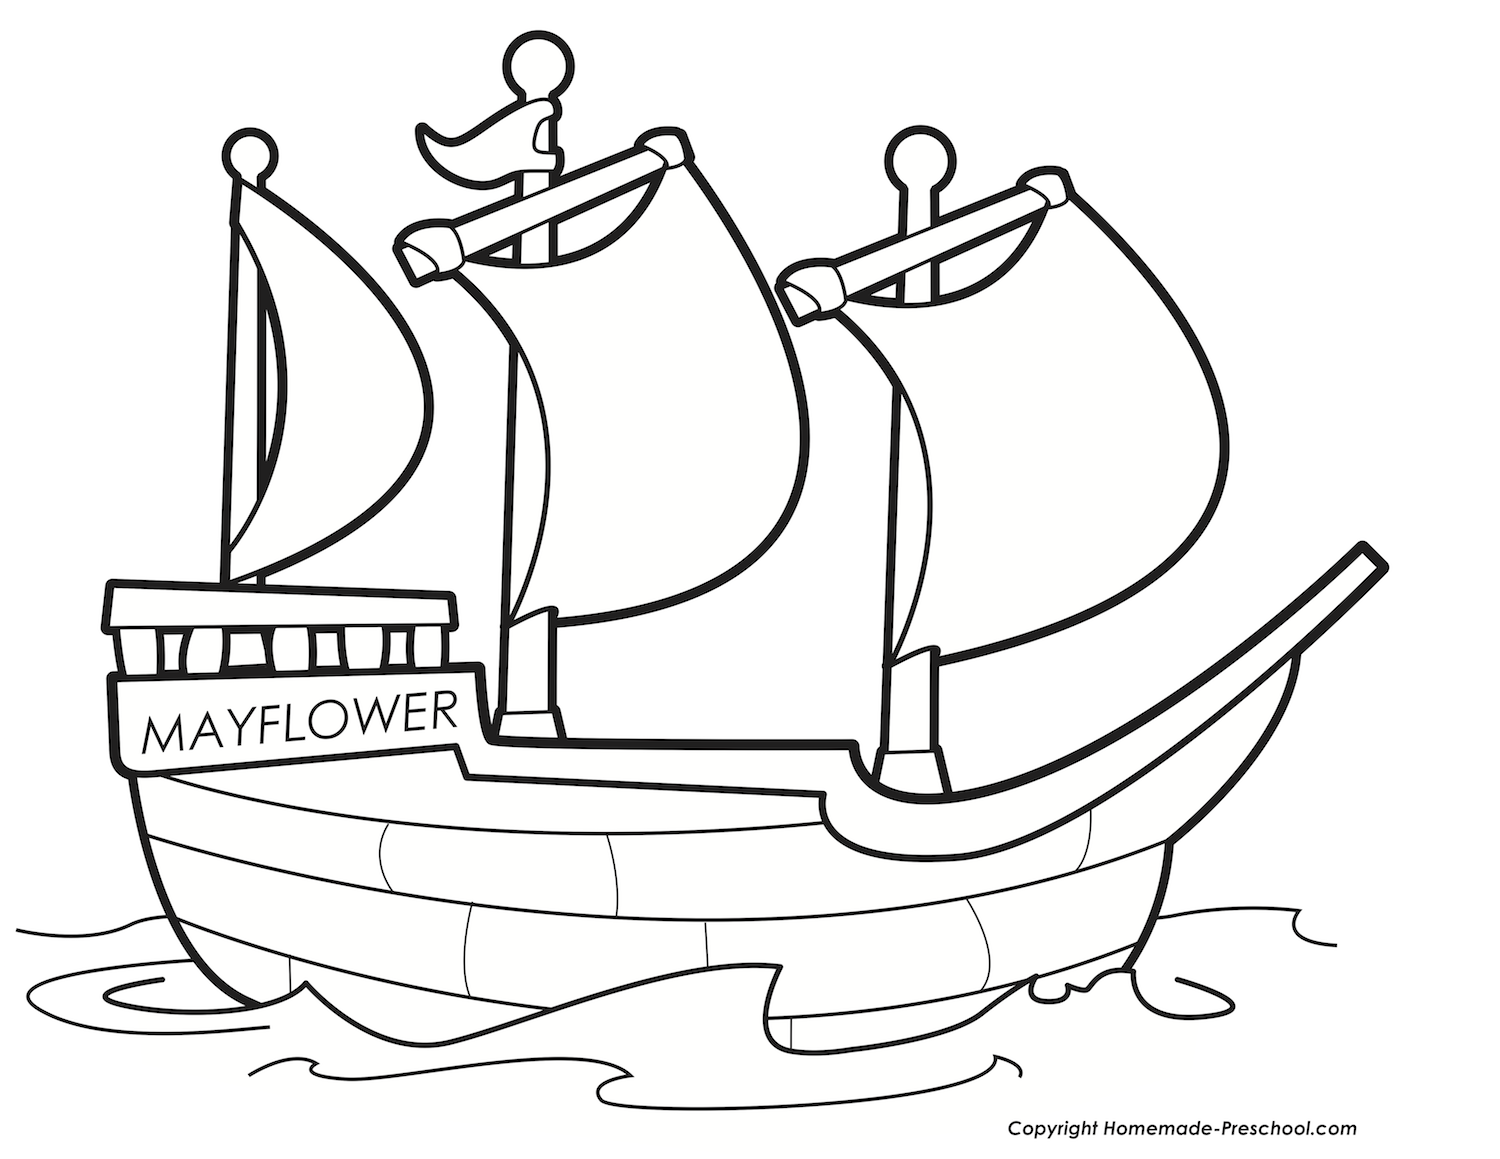 Free Thanksgiving Mayflower Coloring Pages at KidsPartyWorks.Com